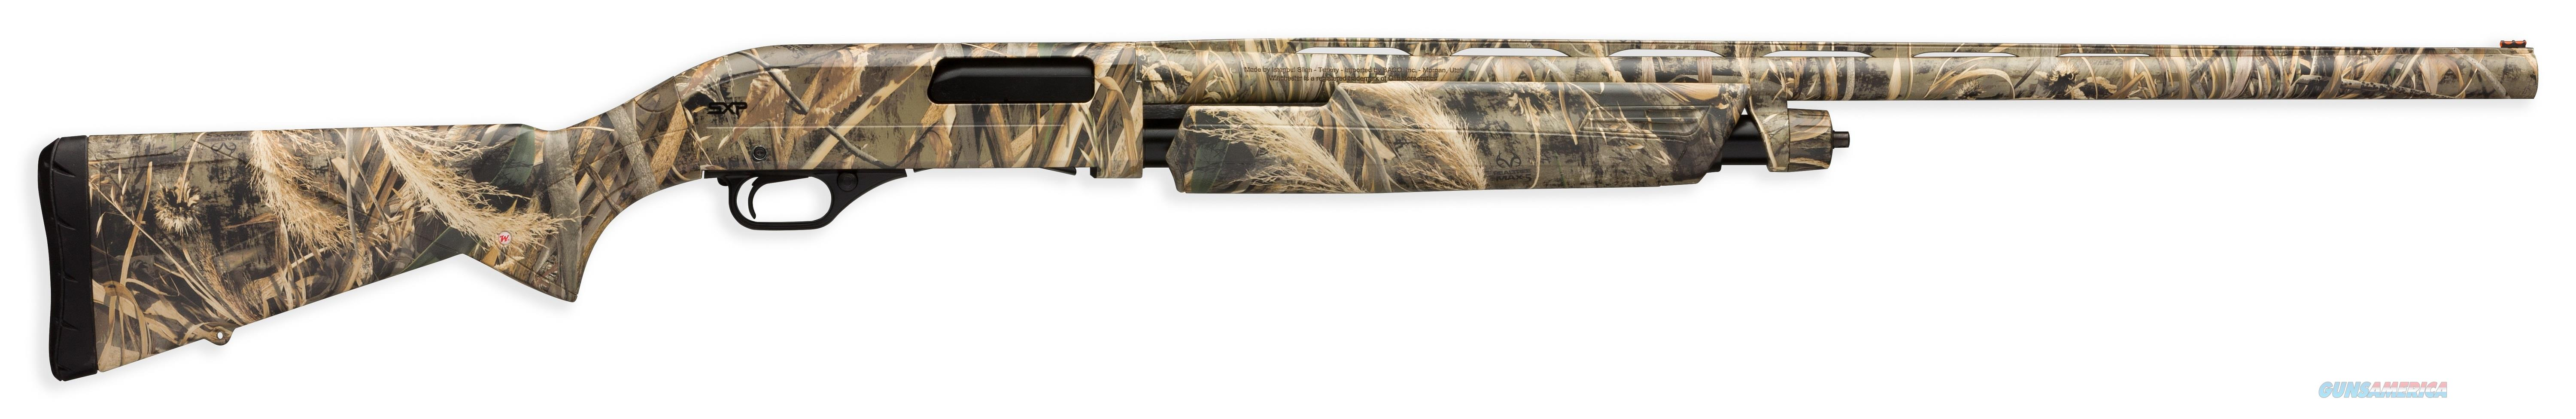 Winchester SXP Waterfowl 20g Max5 3in 28in  Guns > Shotguns > Winchester Shotguns - Modern > Autoloaders > Hunting